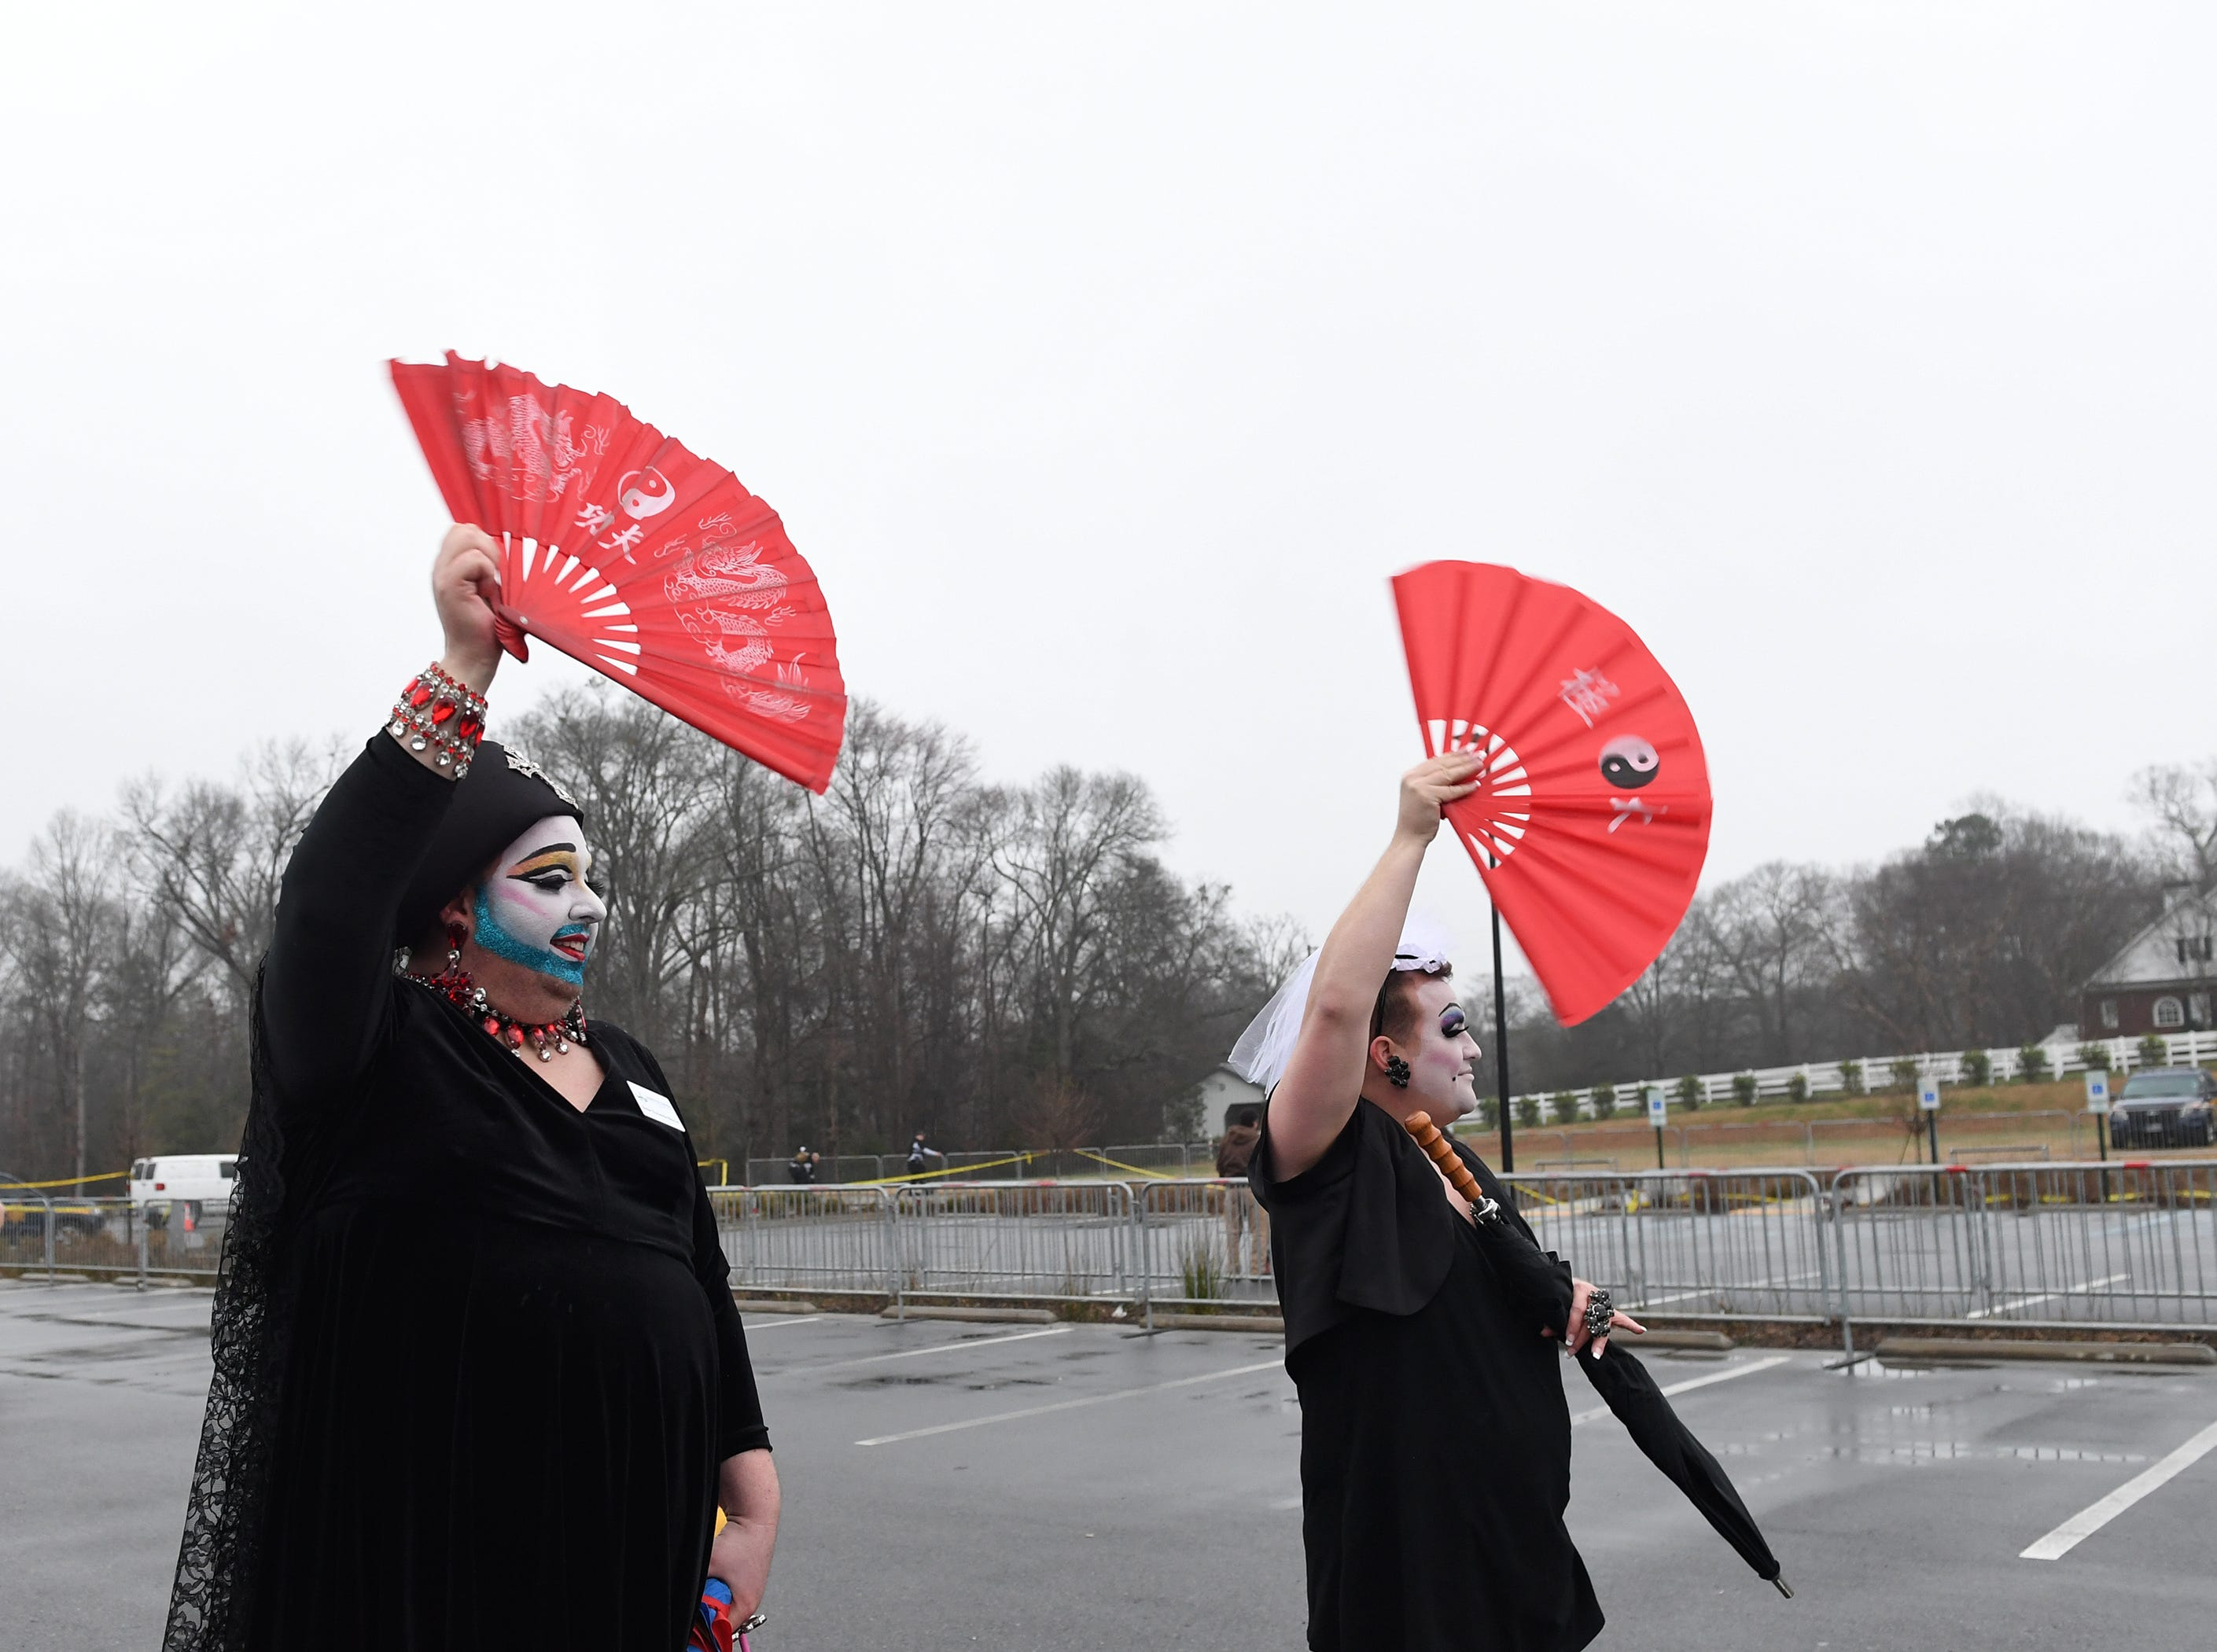 People gathered in support of Drag Queen Story Hour at Five Forks Branch Library cheer as some of the last attendees leave the library Sunday, Feb. 17, 2019.